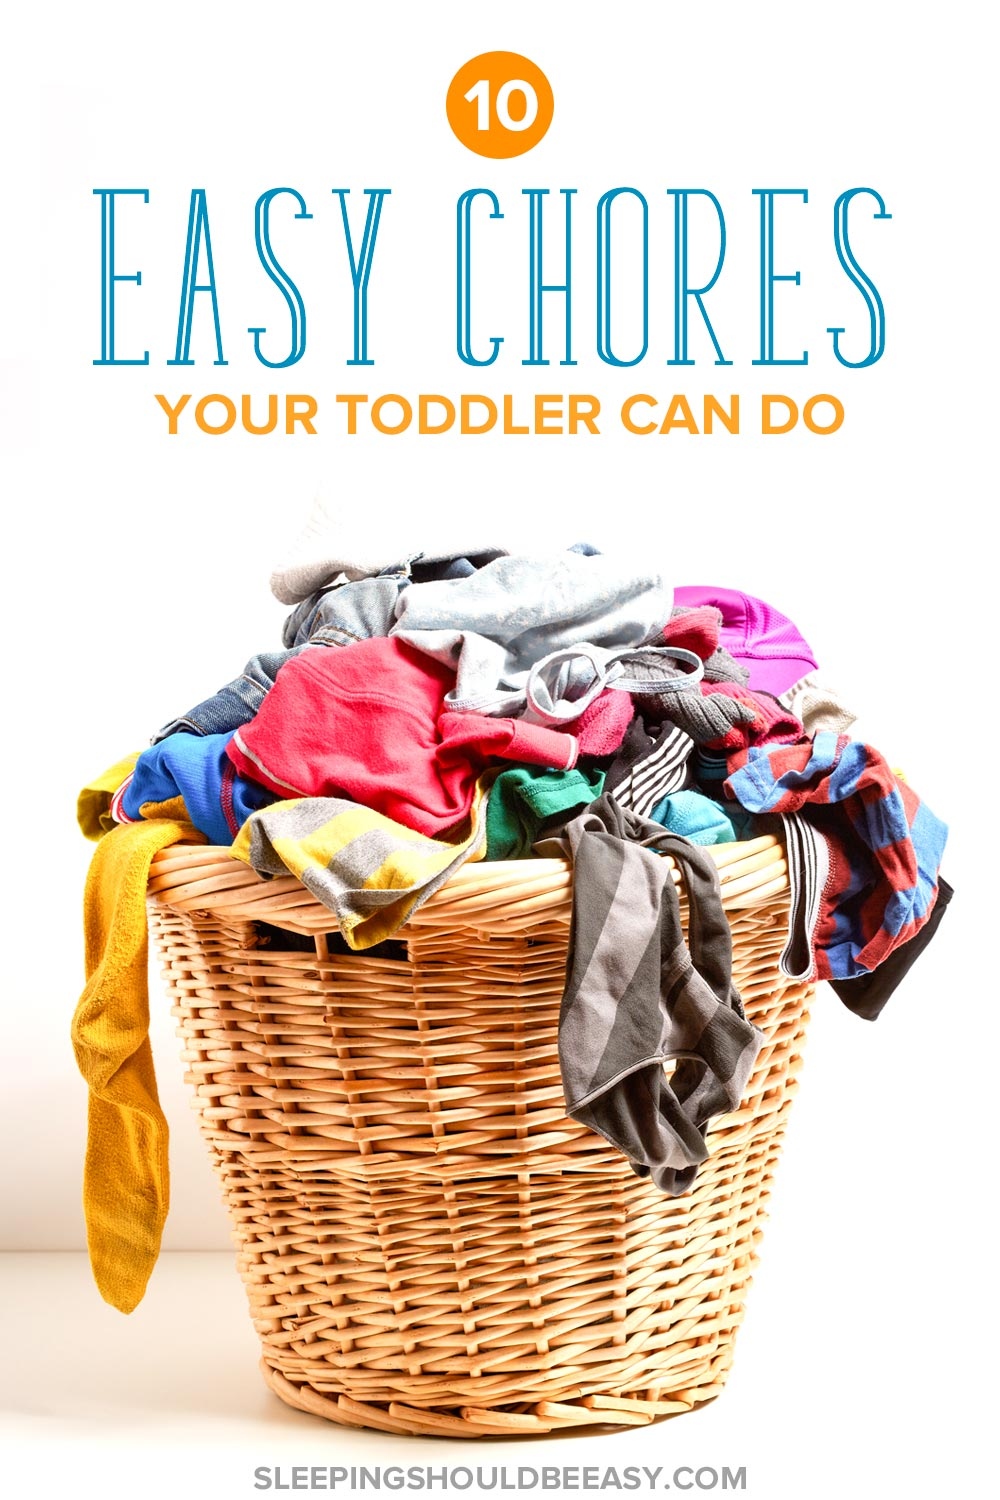 Start early with toddler chores and make them fun! Giving kids chores has many benefits and is easy to do. Discover 10 chores your toddler can do.